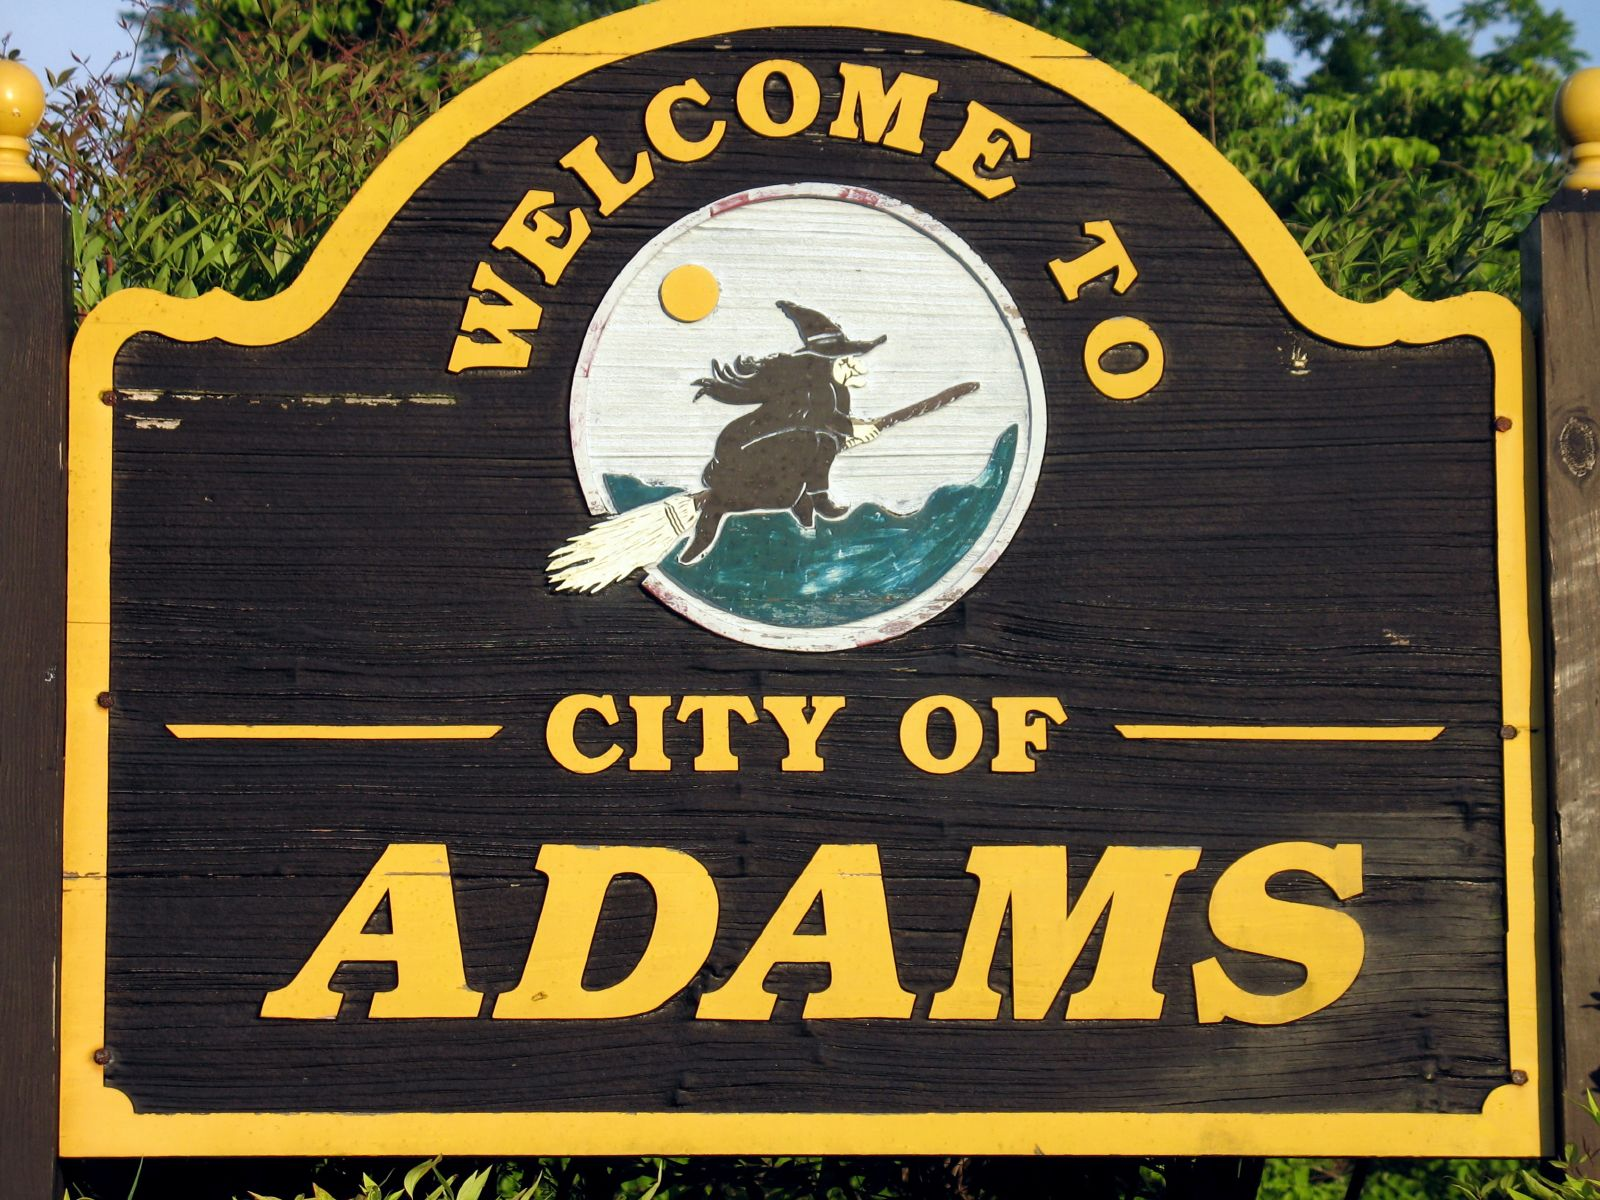 A welcome sign to the city of Adams in Tennessee